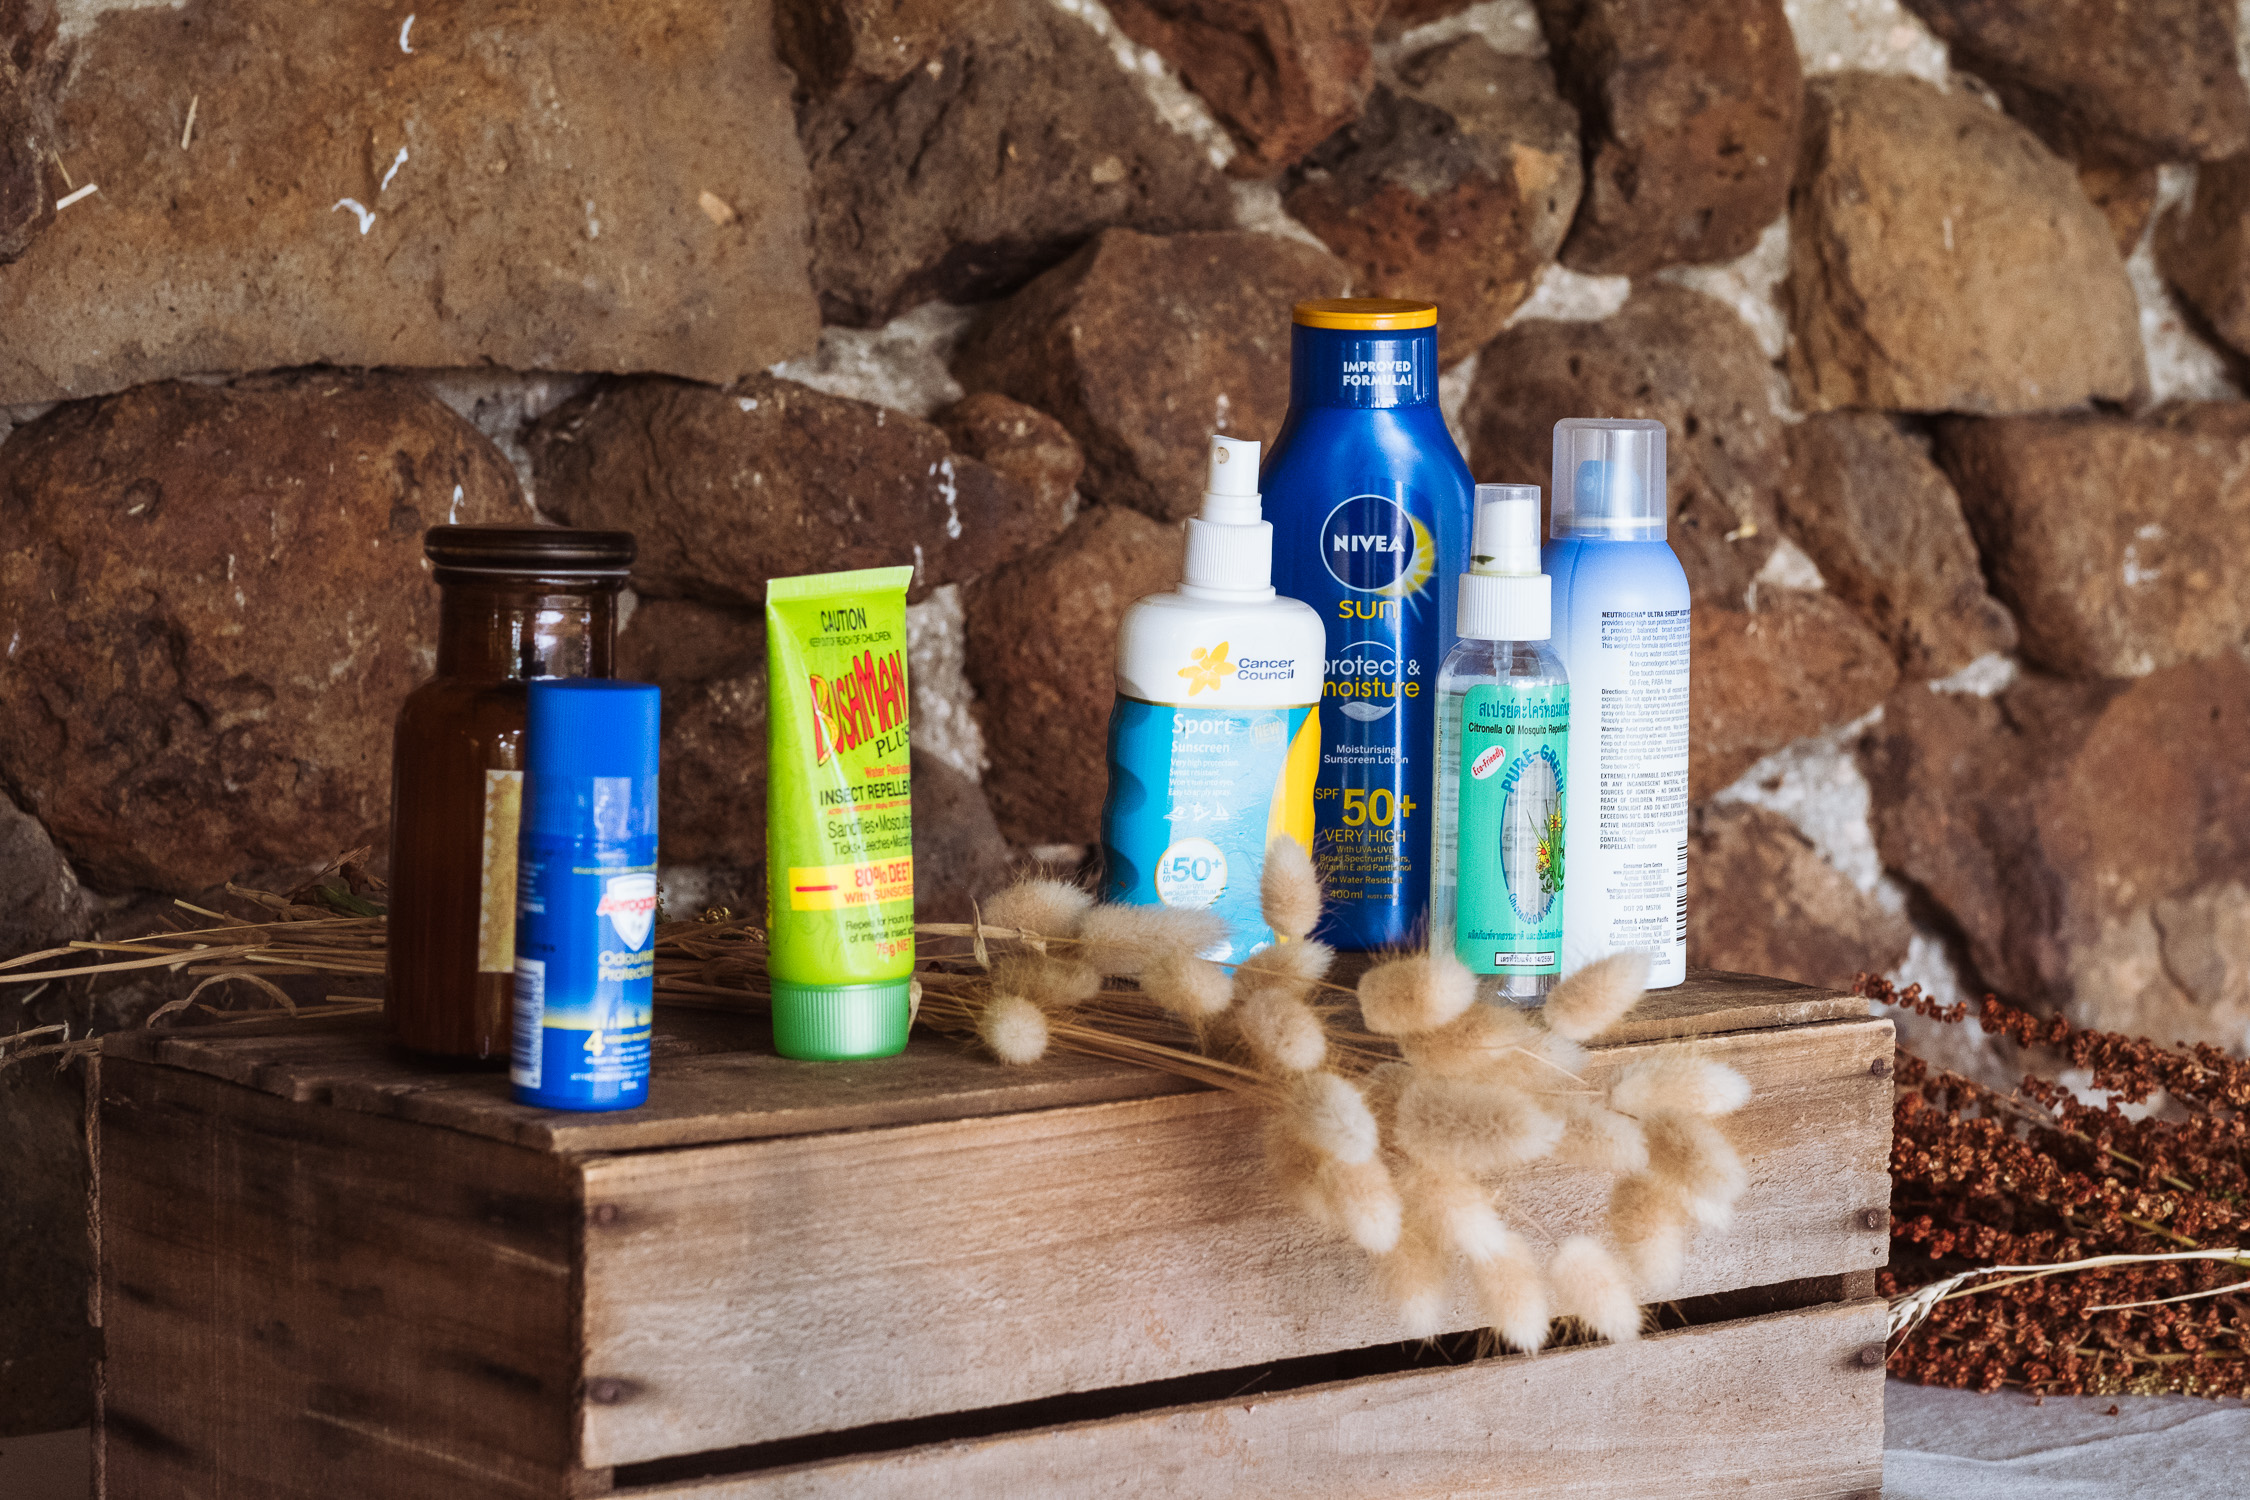 Melbourne Sunnystones Camp Wedding - suncare for guests at outdoor ceremony